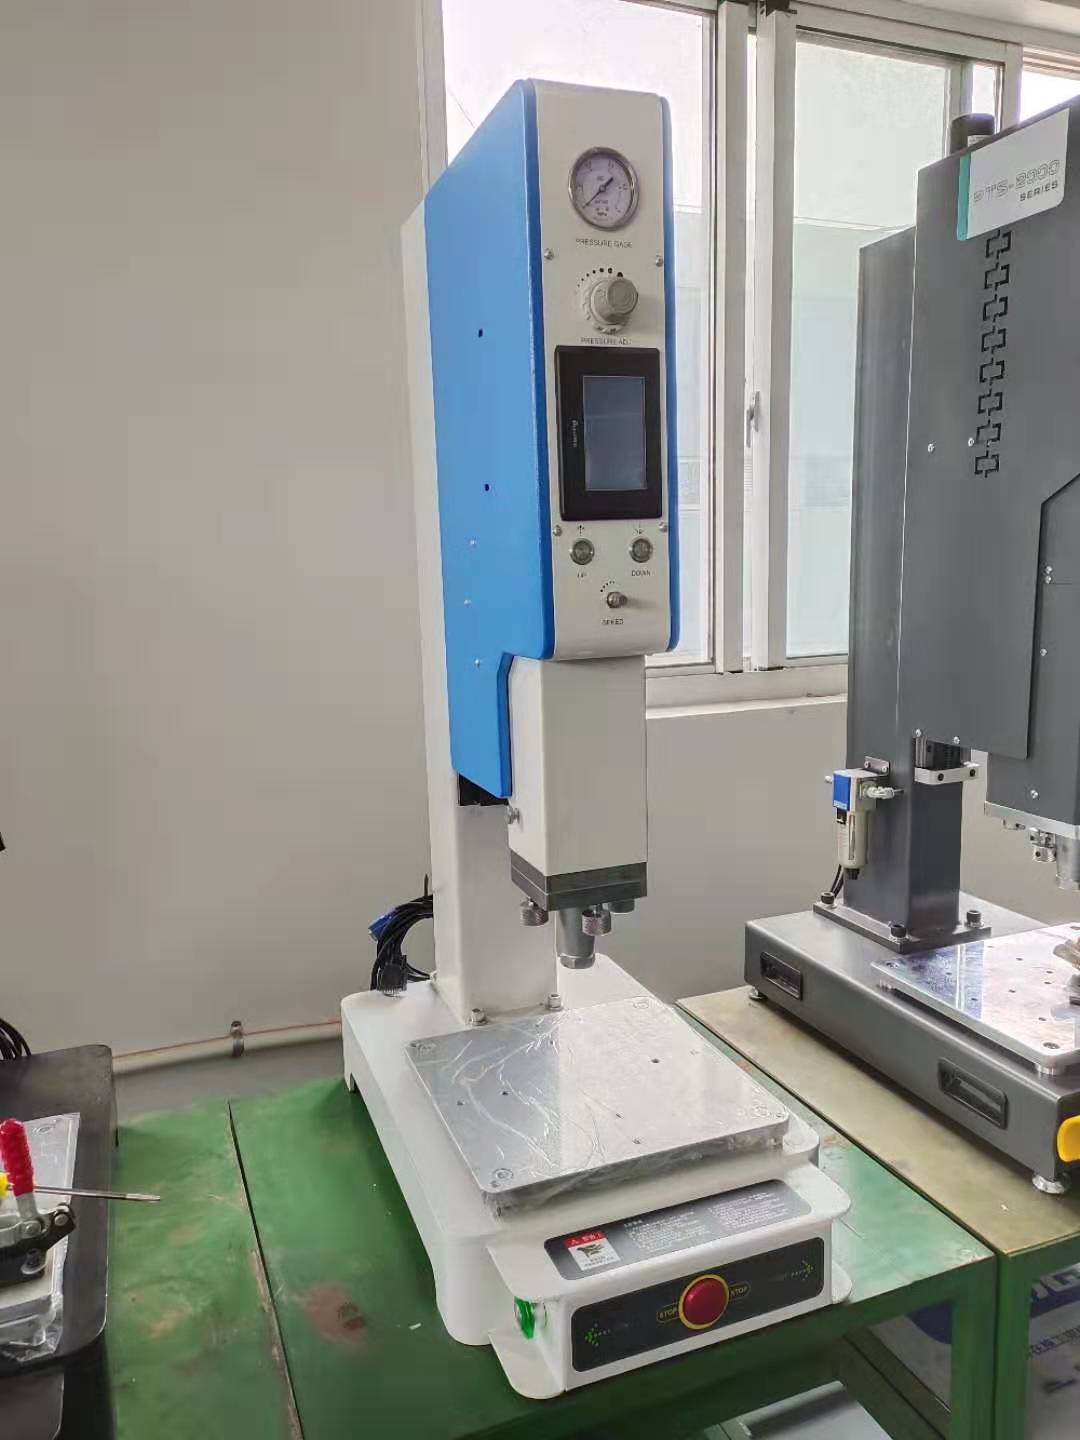 Shanghai high-quality ultrasonic welding machine integrity enterprise integrity and mutual benefit Kunshan Furusi Precision Machinery Supply